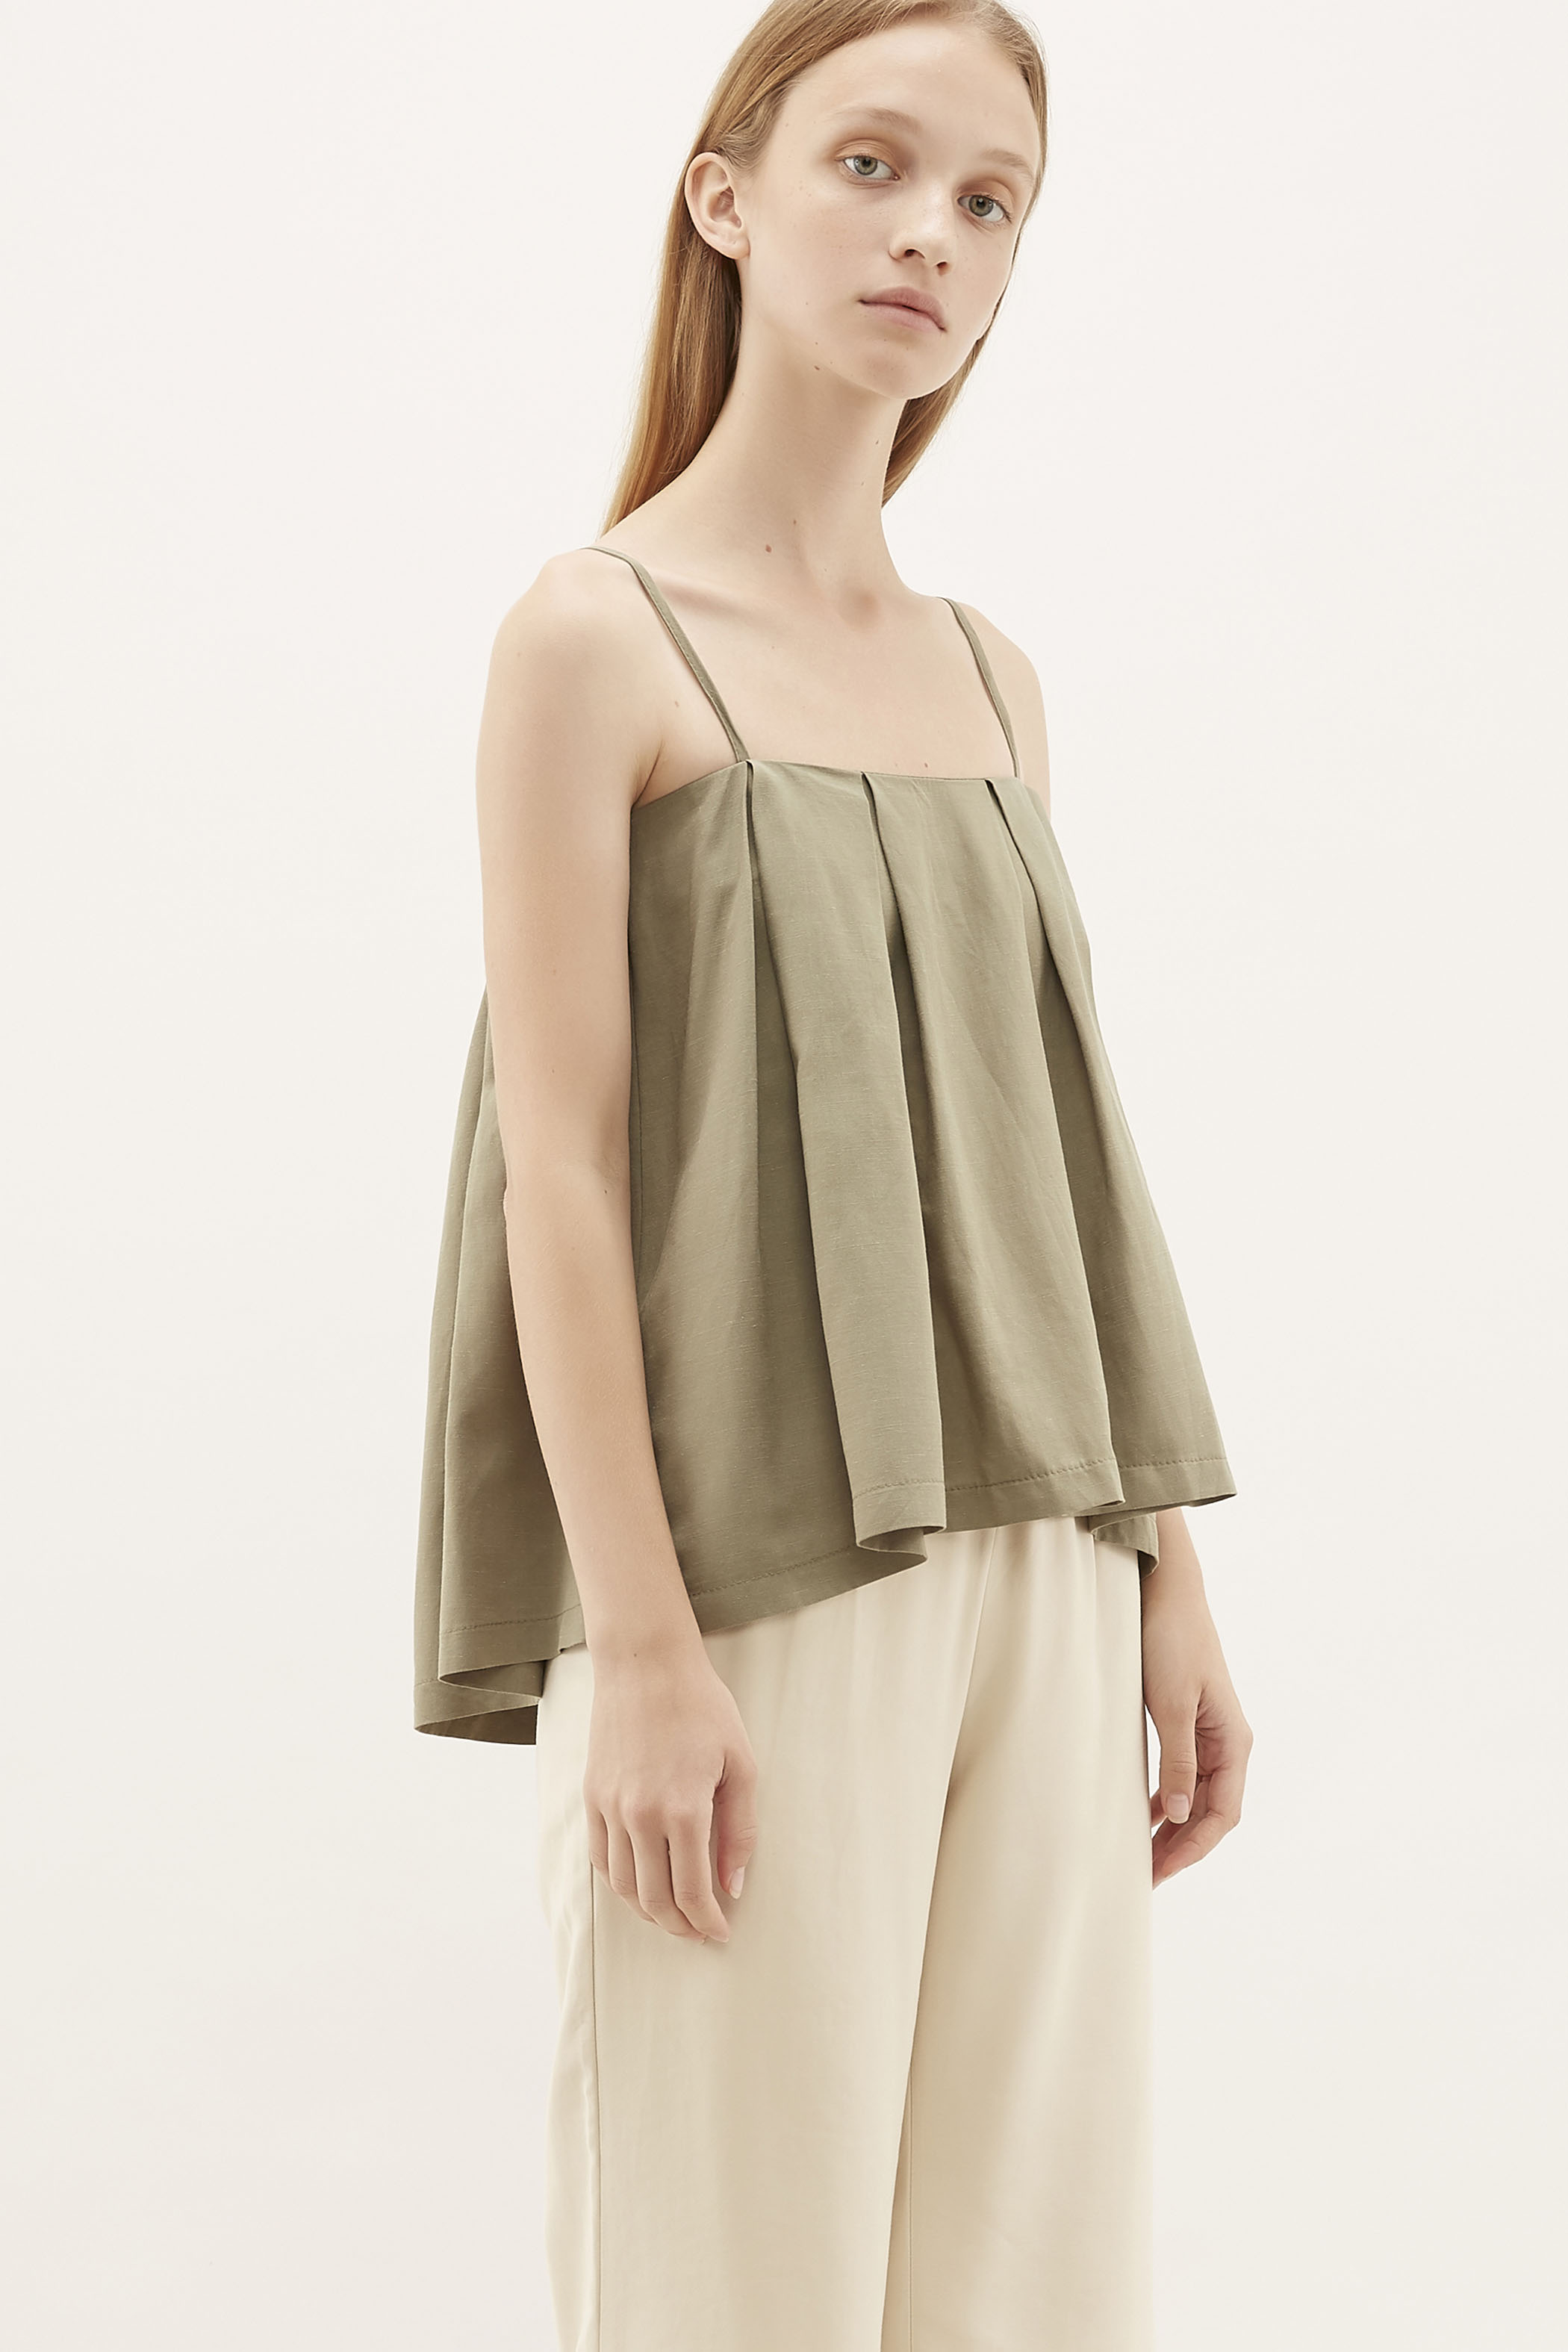 Liron Pleated Camisole